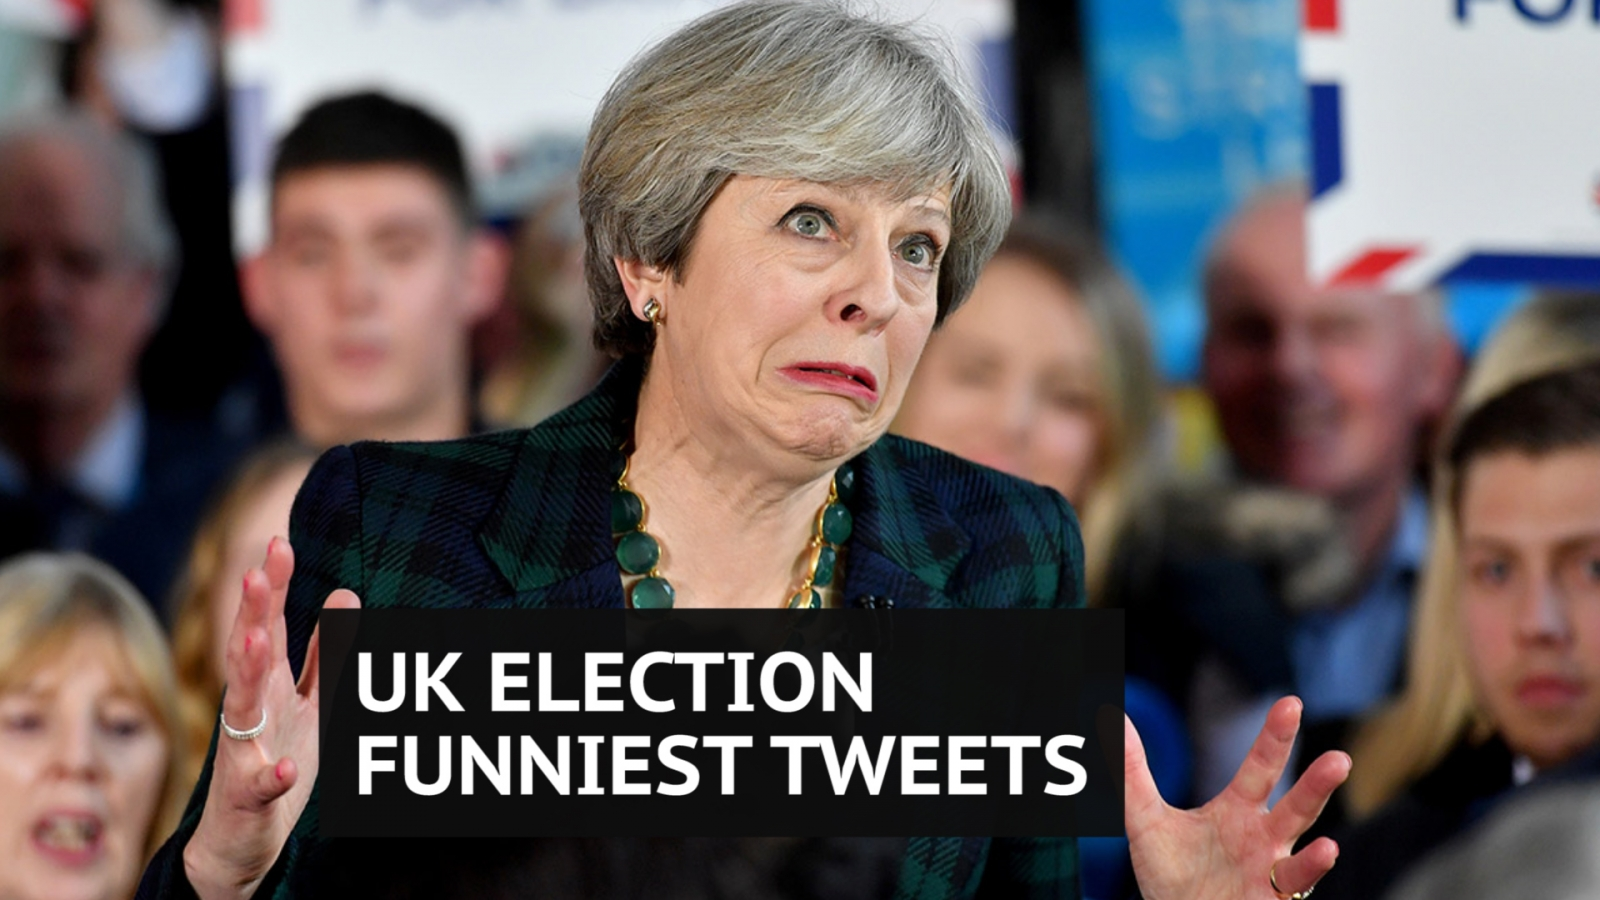 election-2017-the-funniest-tweets-so-far